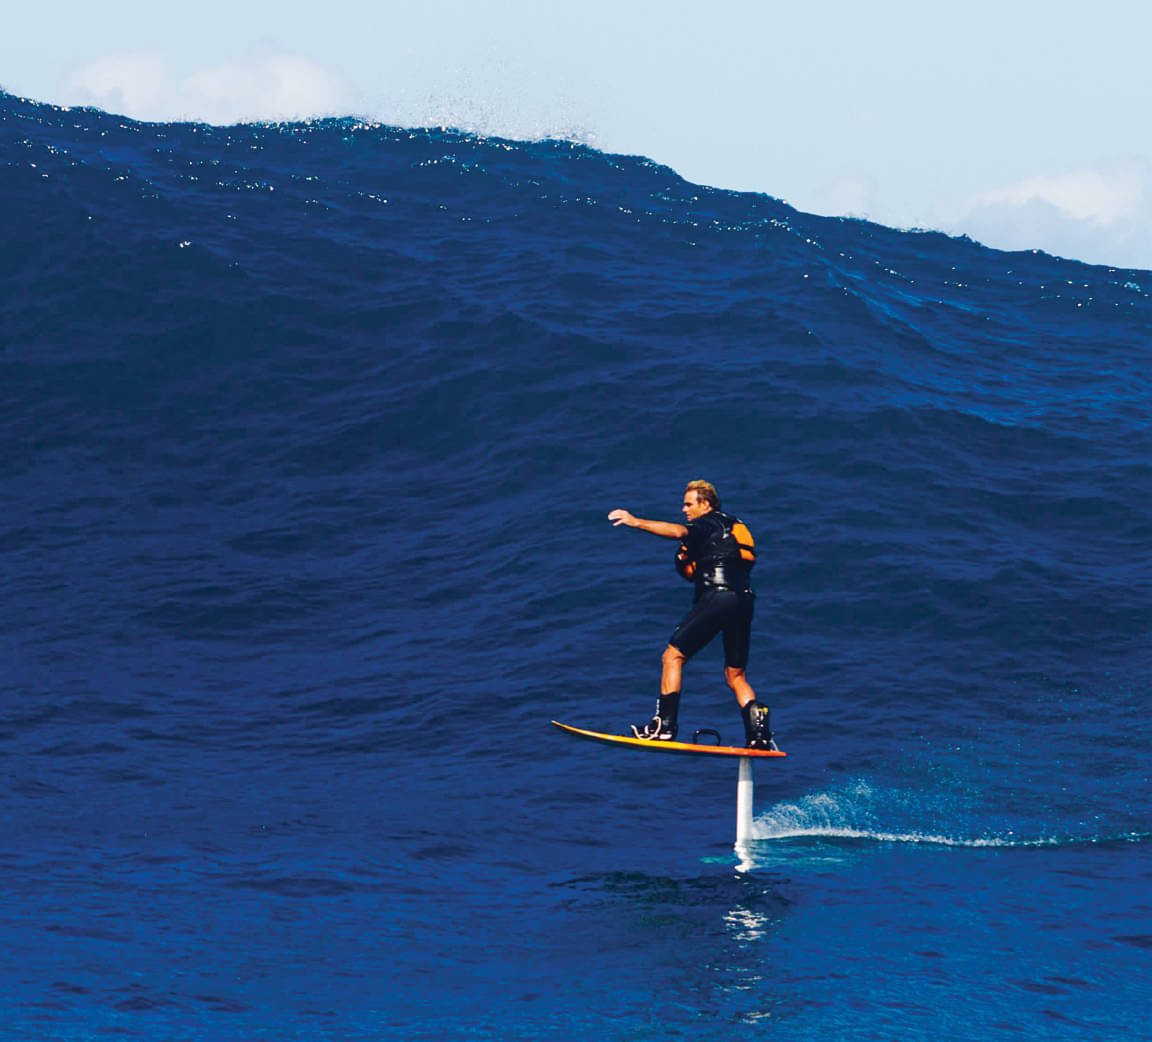 Surfing and SUP Legend - Laird Hamilton